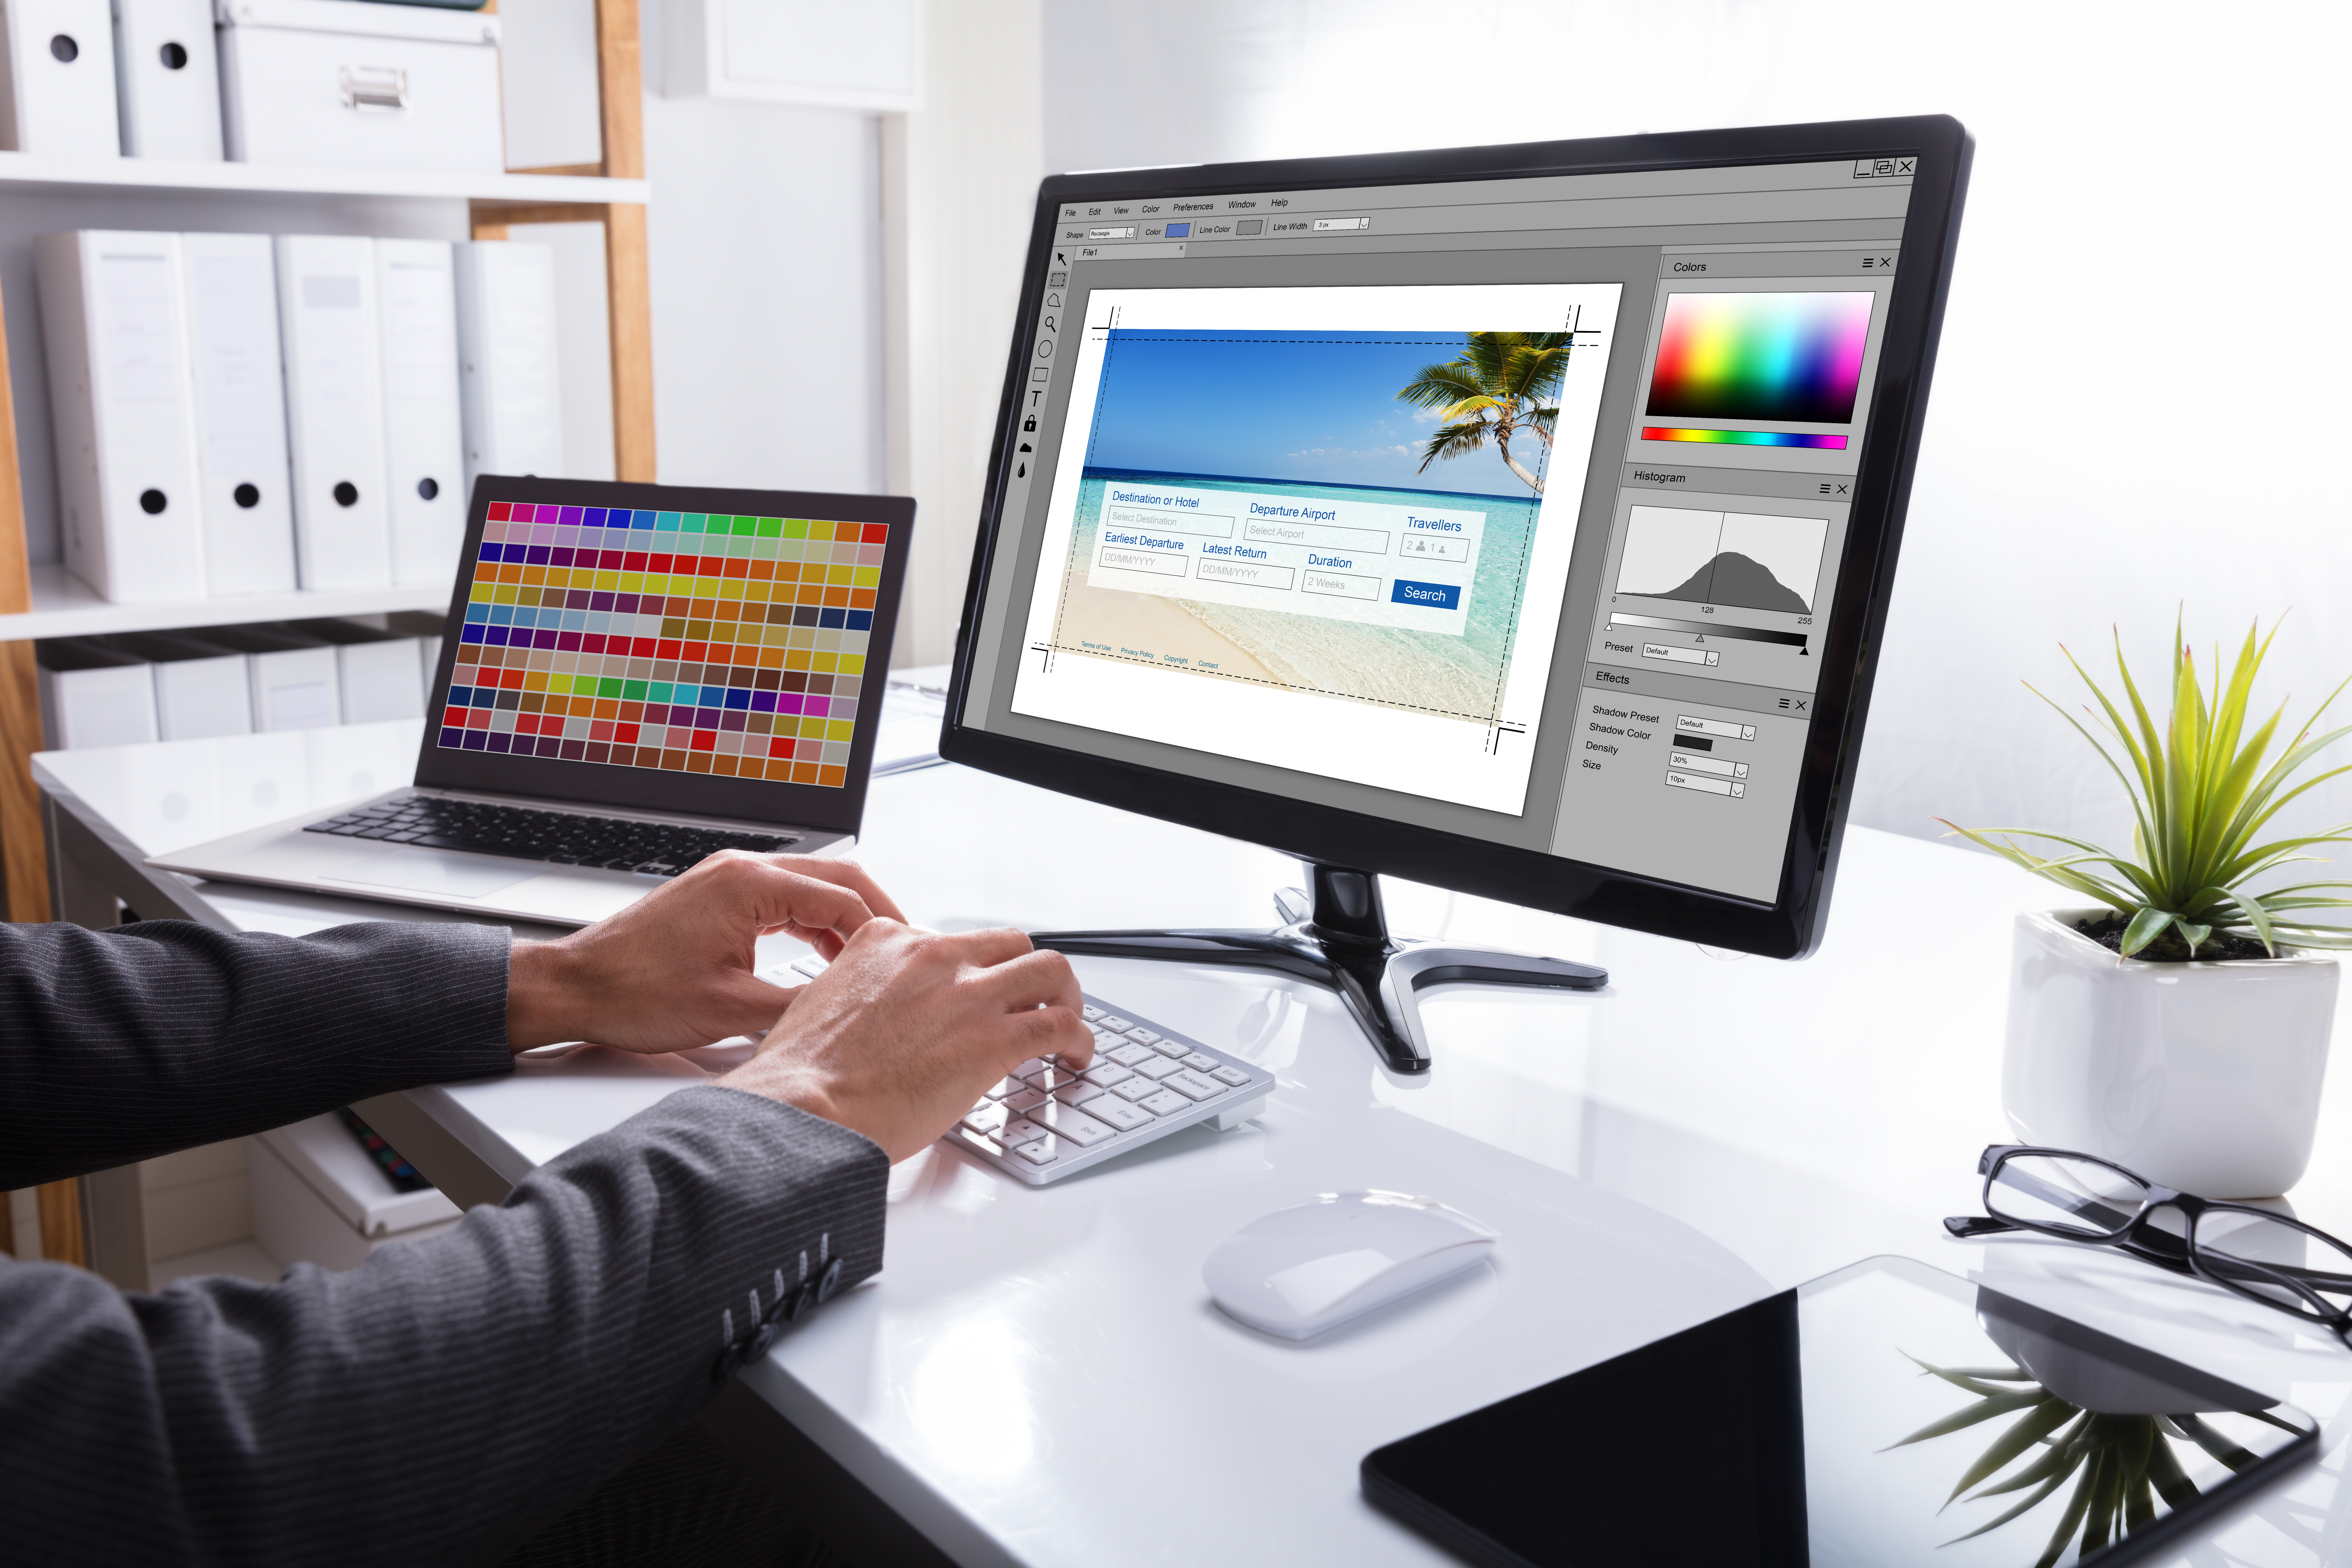 How to Scale Without Distortion in Photoshop | Chron com